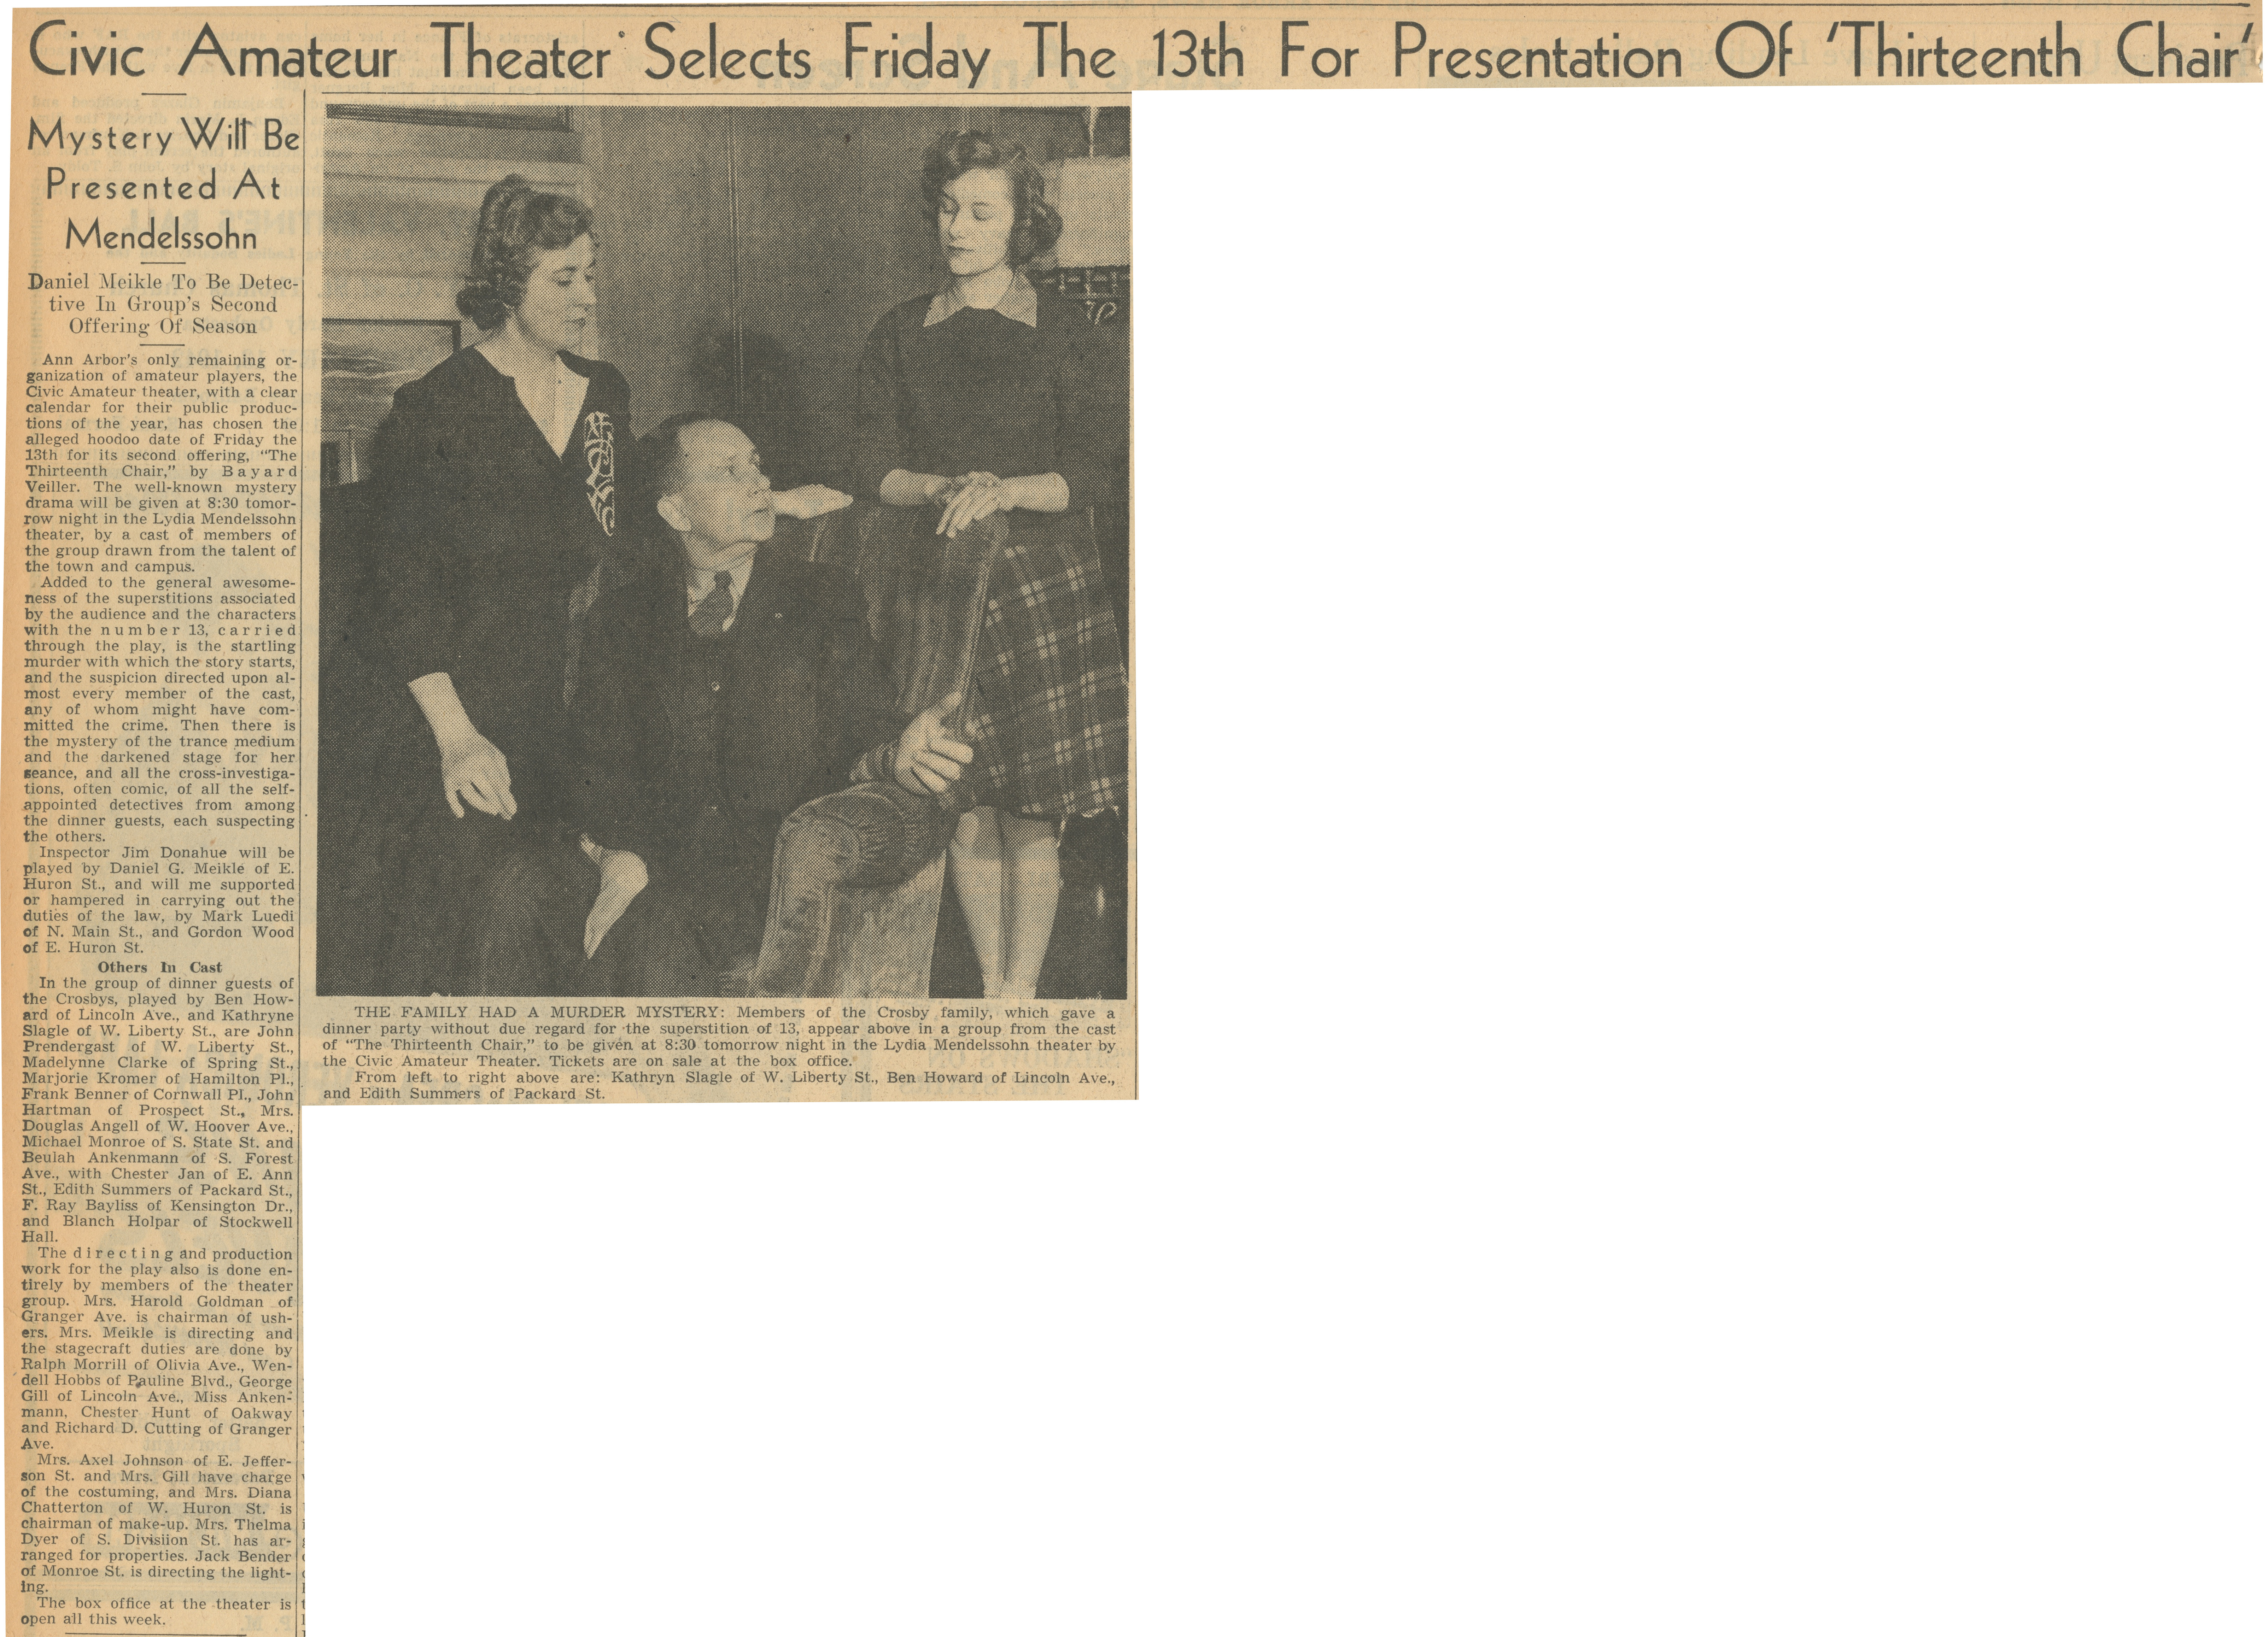 Civic Amateur Theater Selects Friday The 13th For Presentation Of 'Thirteenth Chair' image